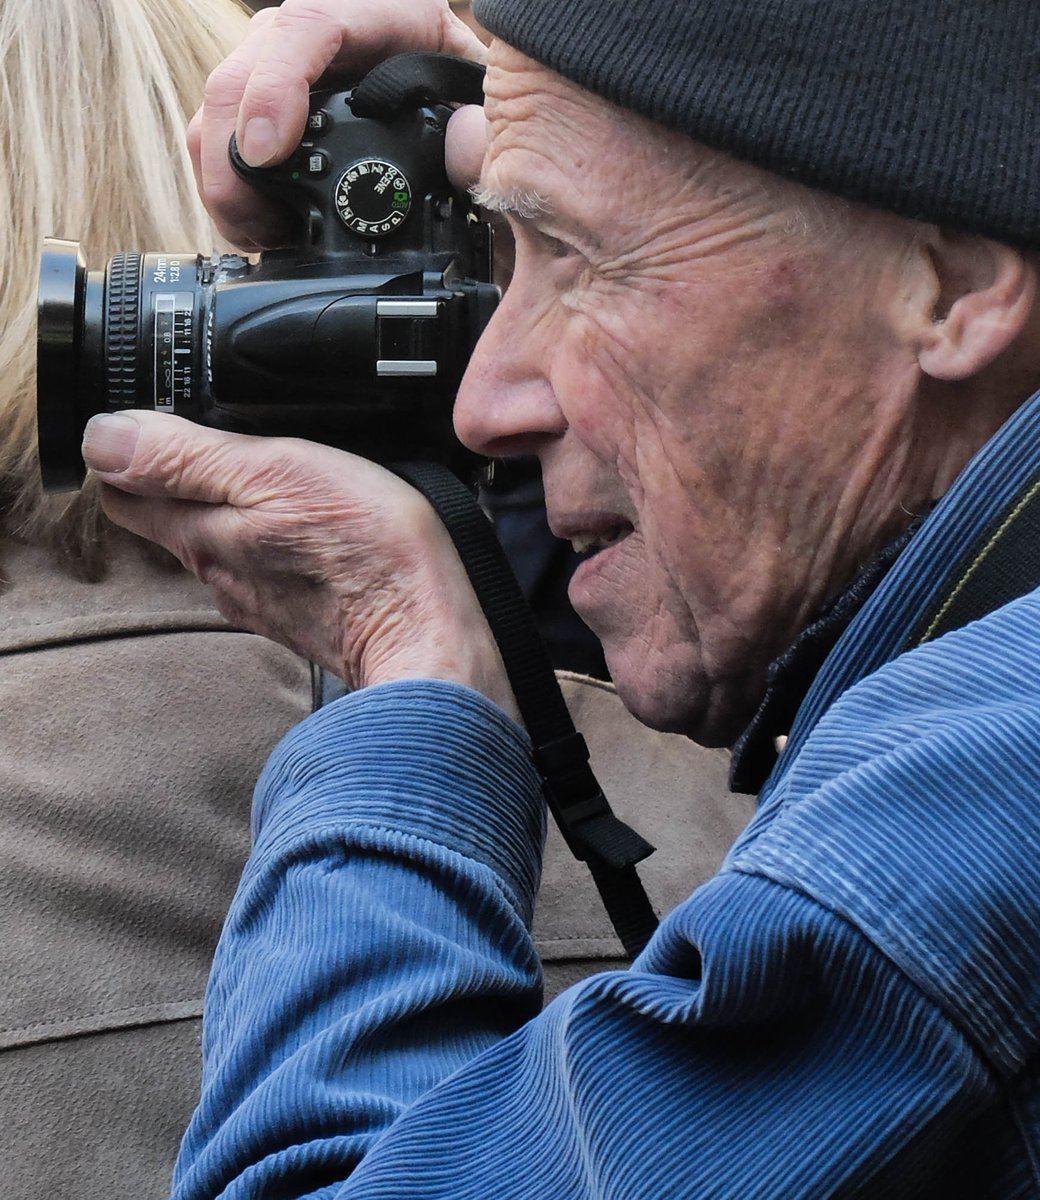 You will be forever missed. Rest in peace, Bill Cunningham. https://t.co/M2ac5mYI3D